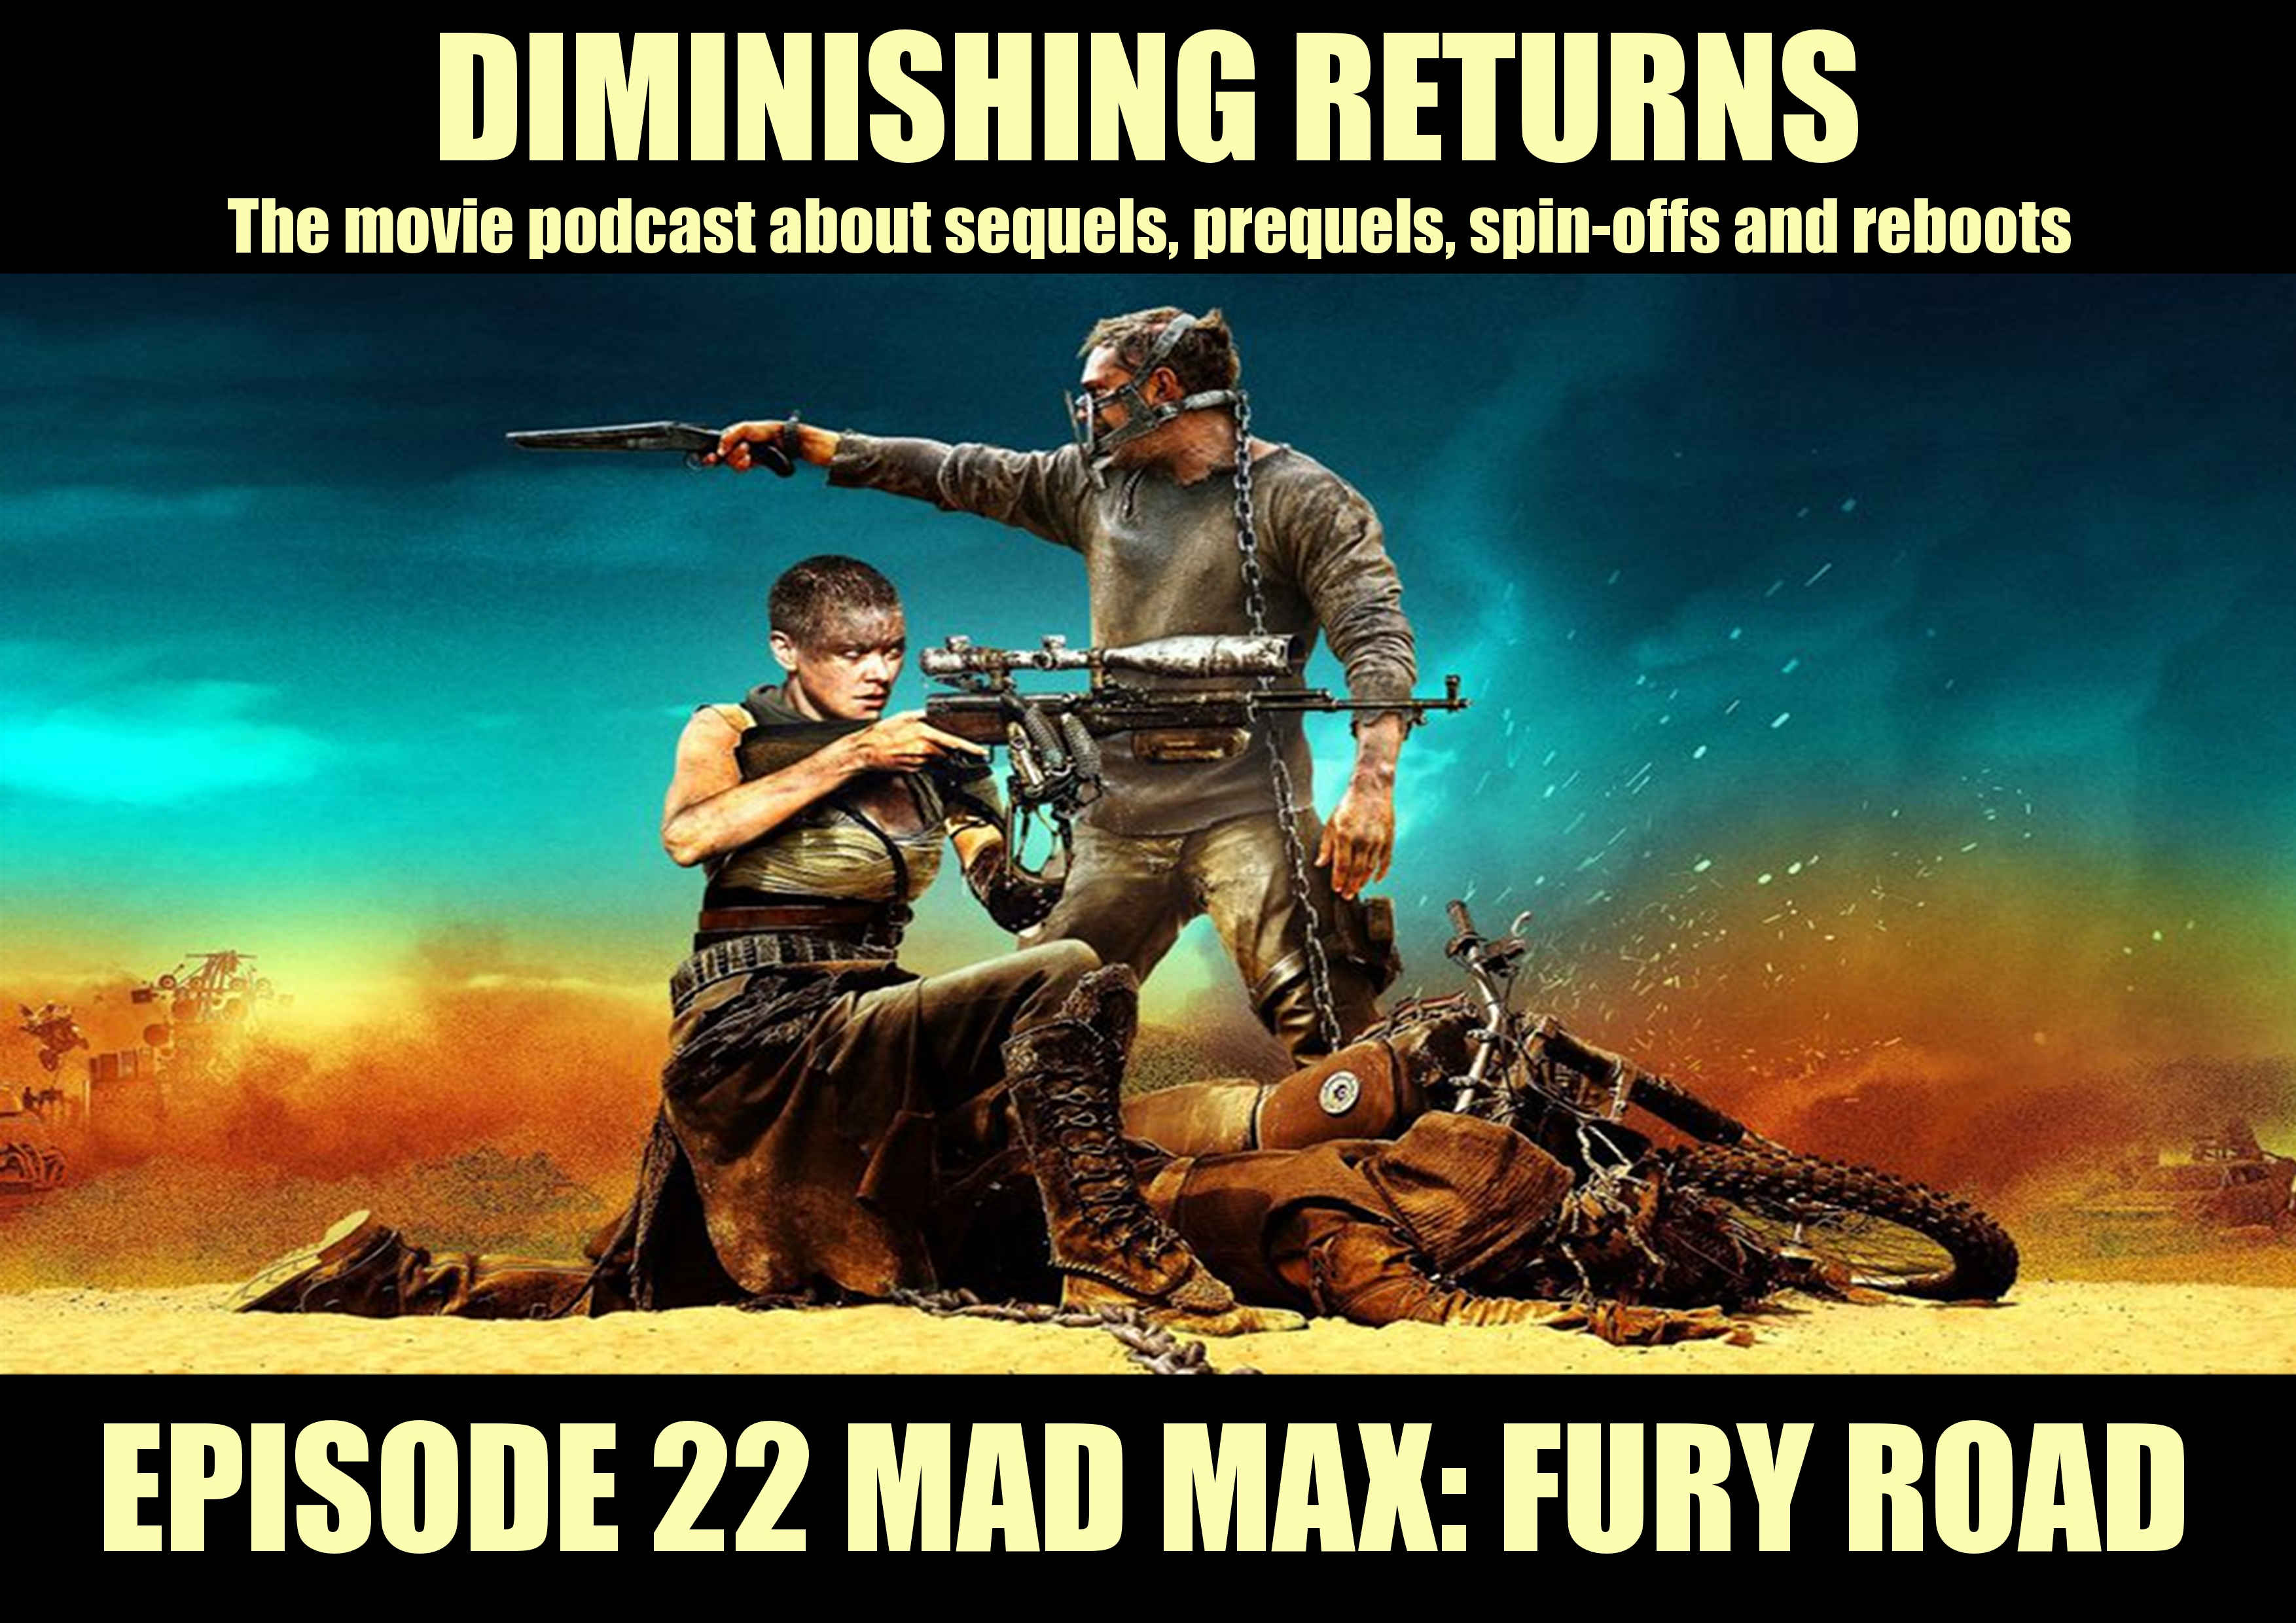 Ep 22 MAD MAX: FURY ROAD - DIMINISHING RETURNS, The movie Podcast about sequels, prequels, spin-offs and reboots